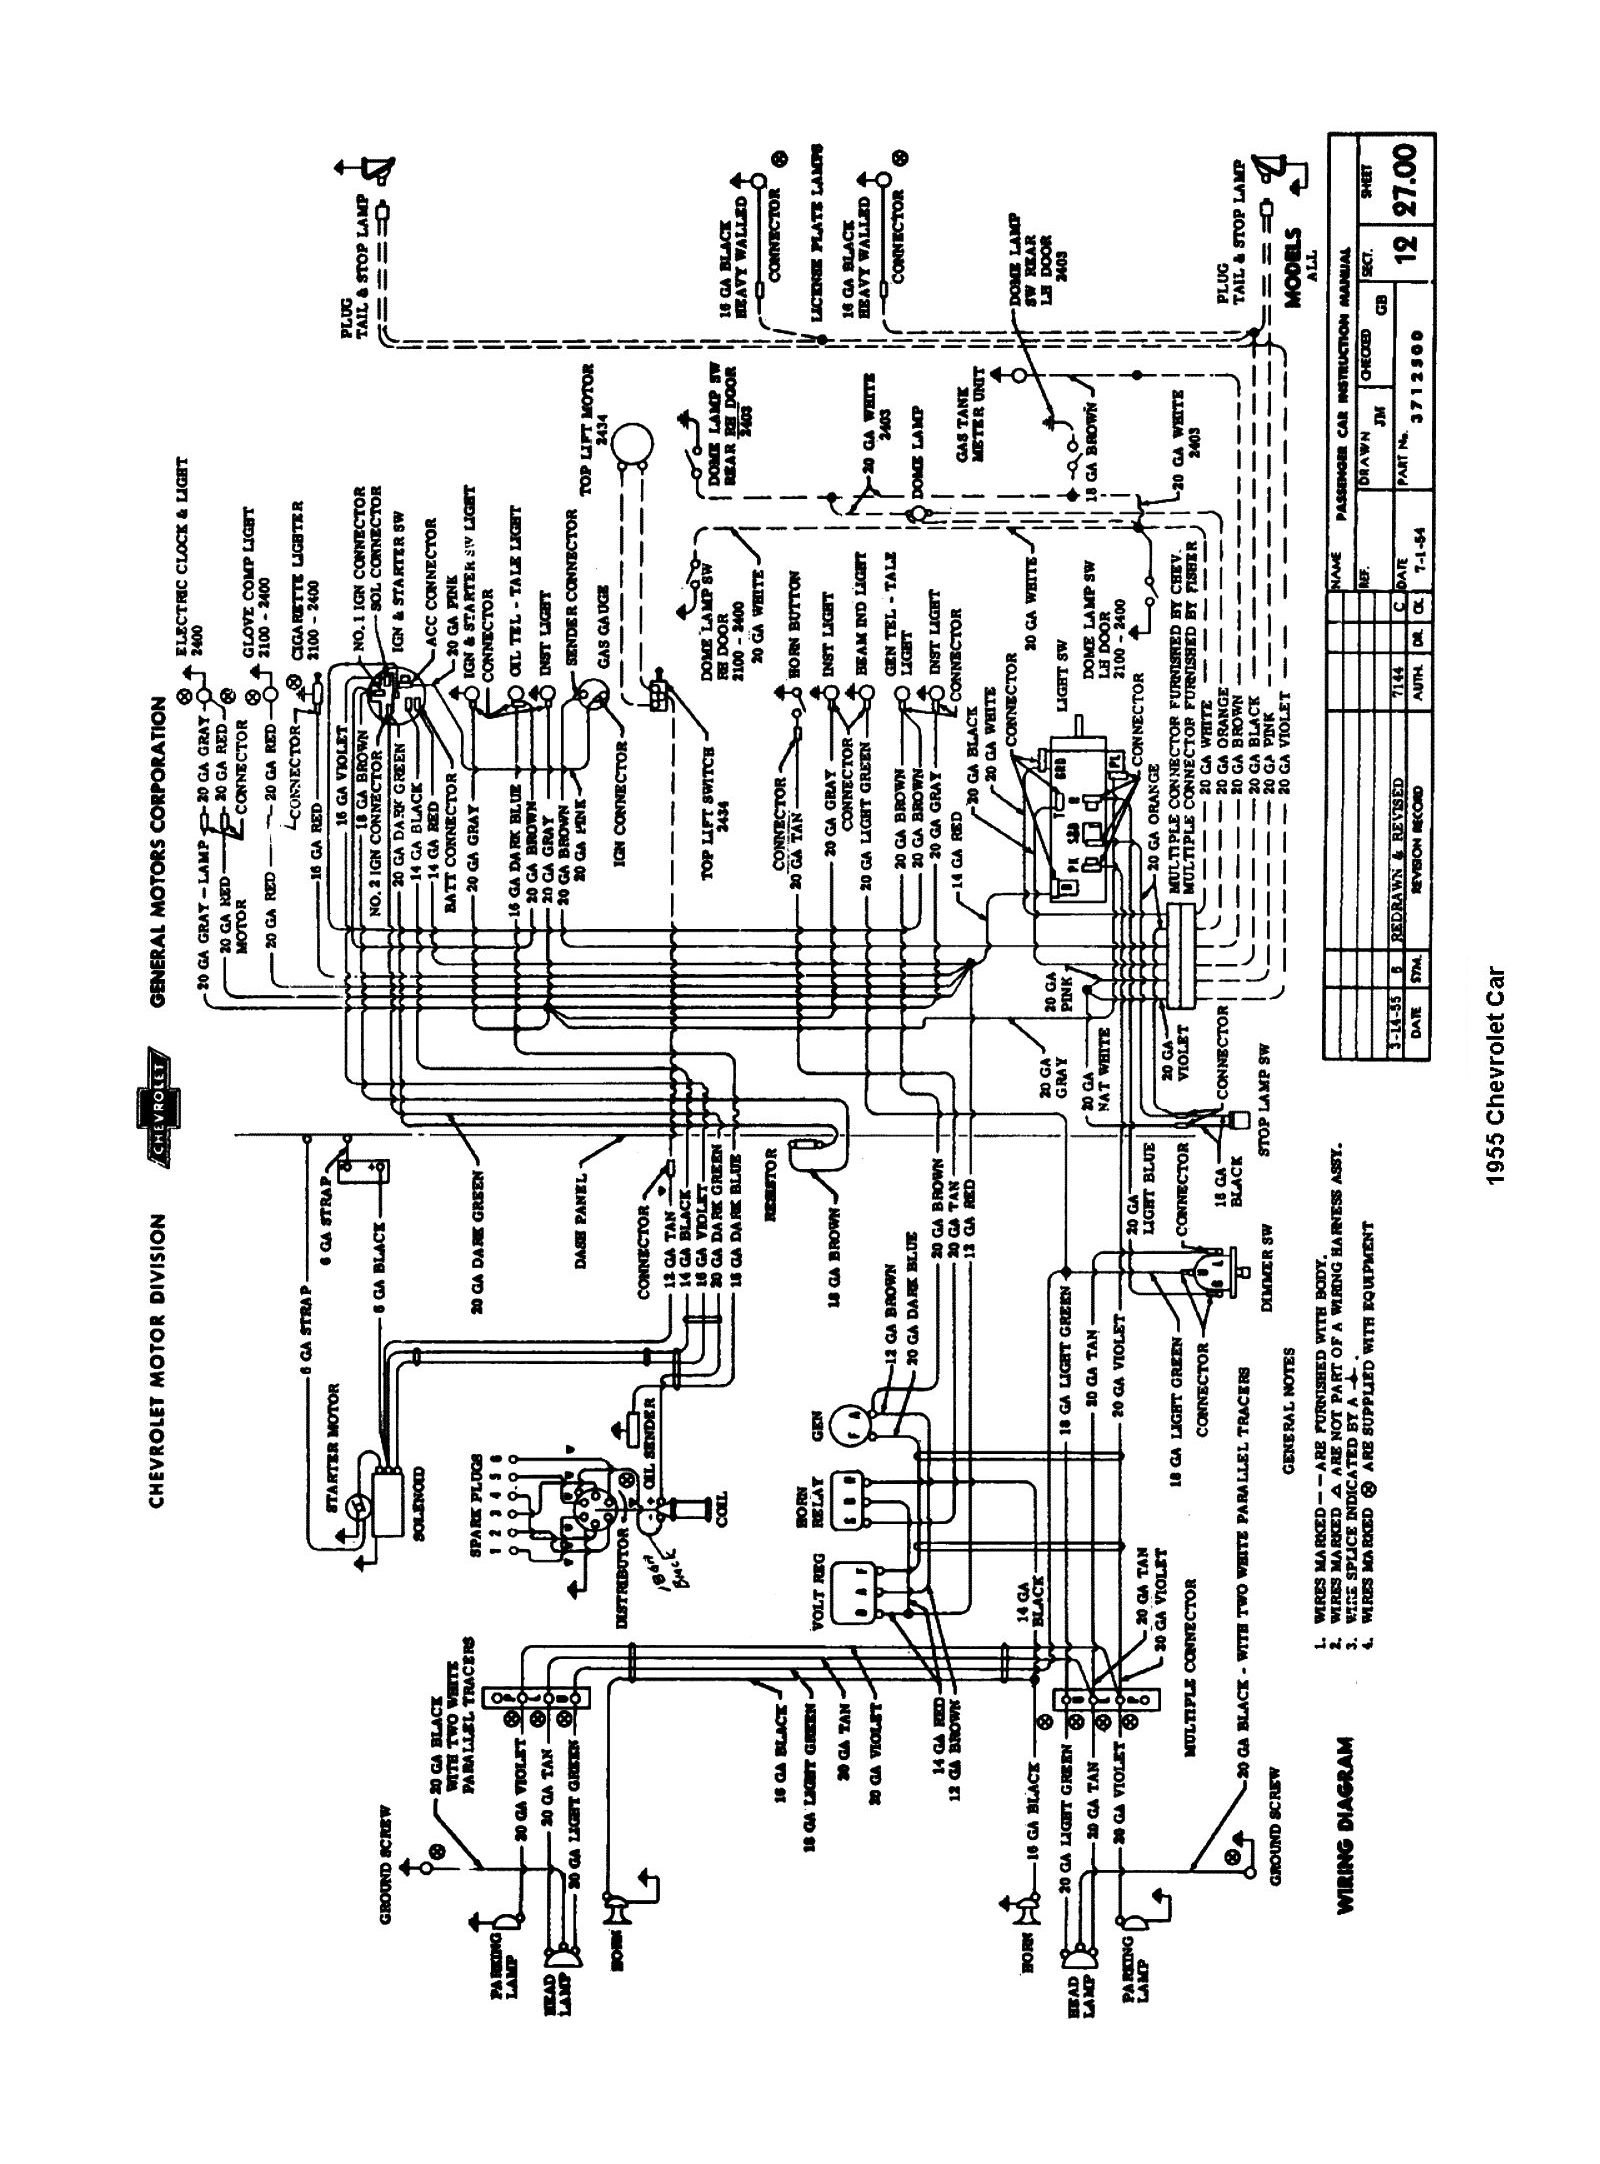 wiring diagram 1955 cadillac diy enthusiasts wiring diagrams u2022 rh broadwaycomputers us